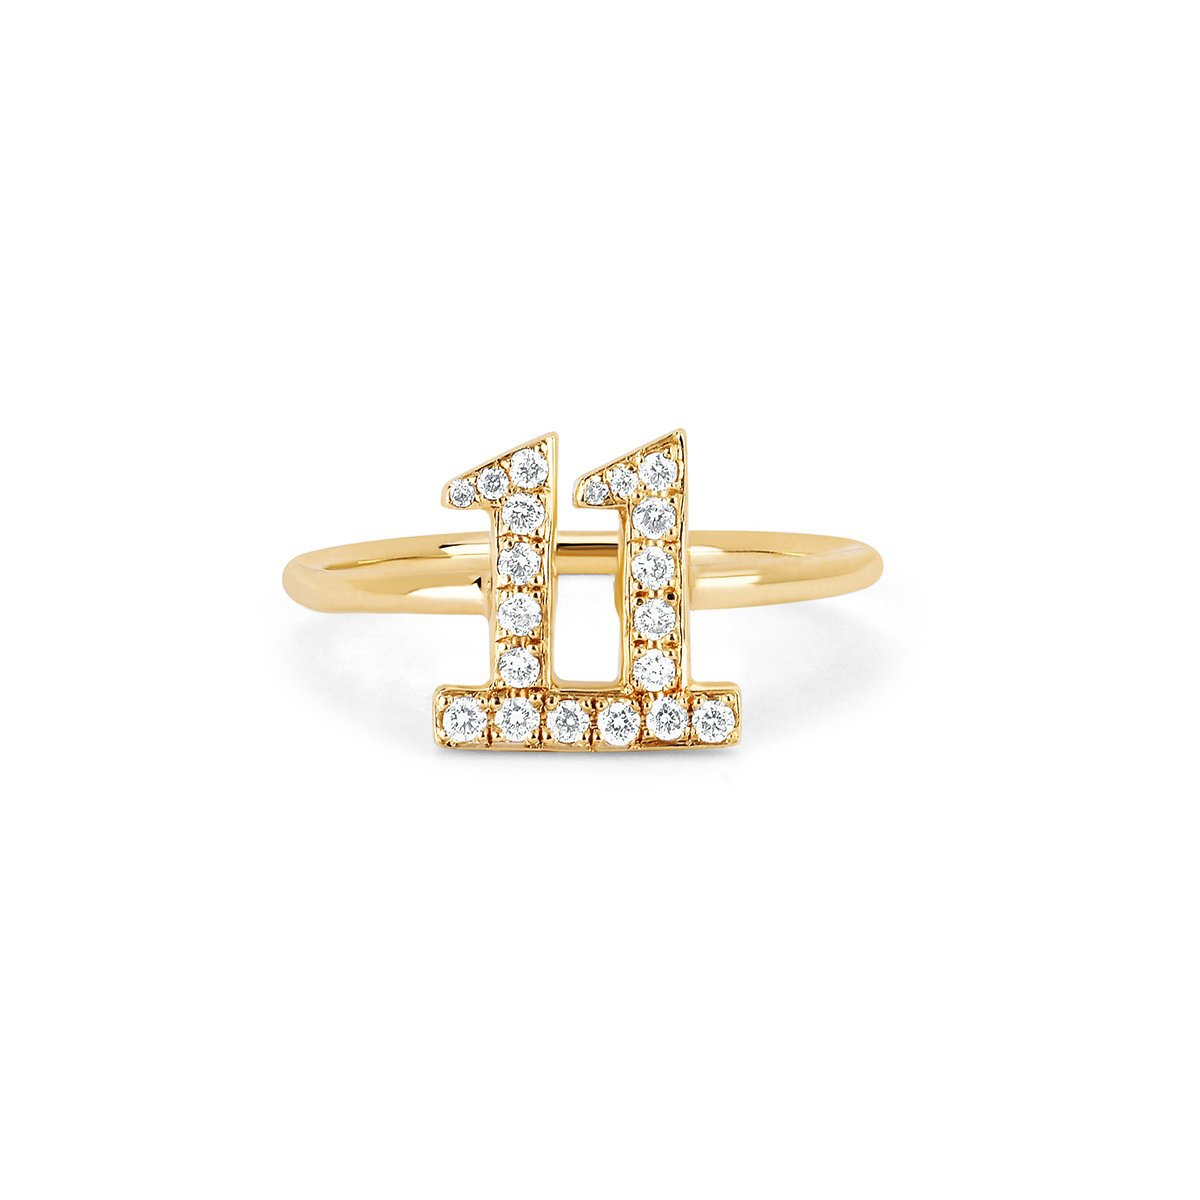 11 Numerology Ring with Pavé Diamonds